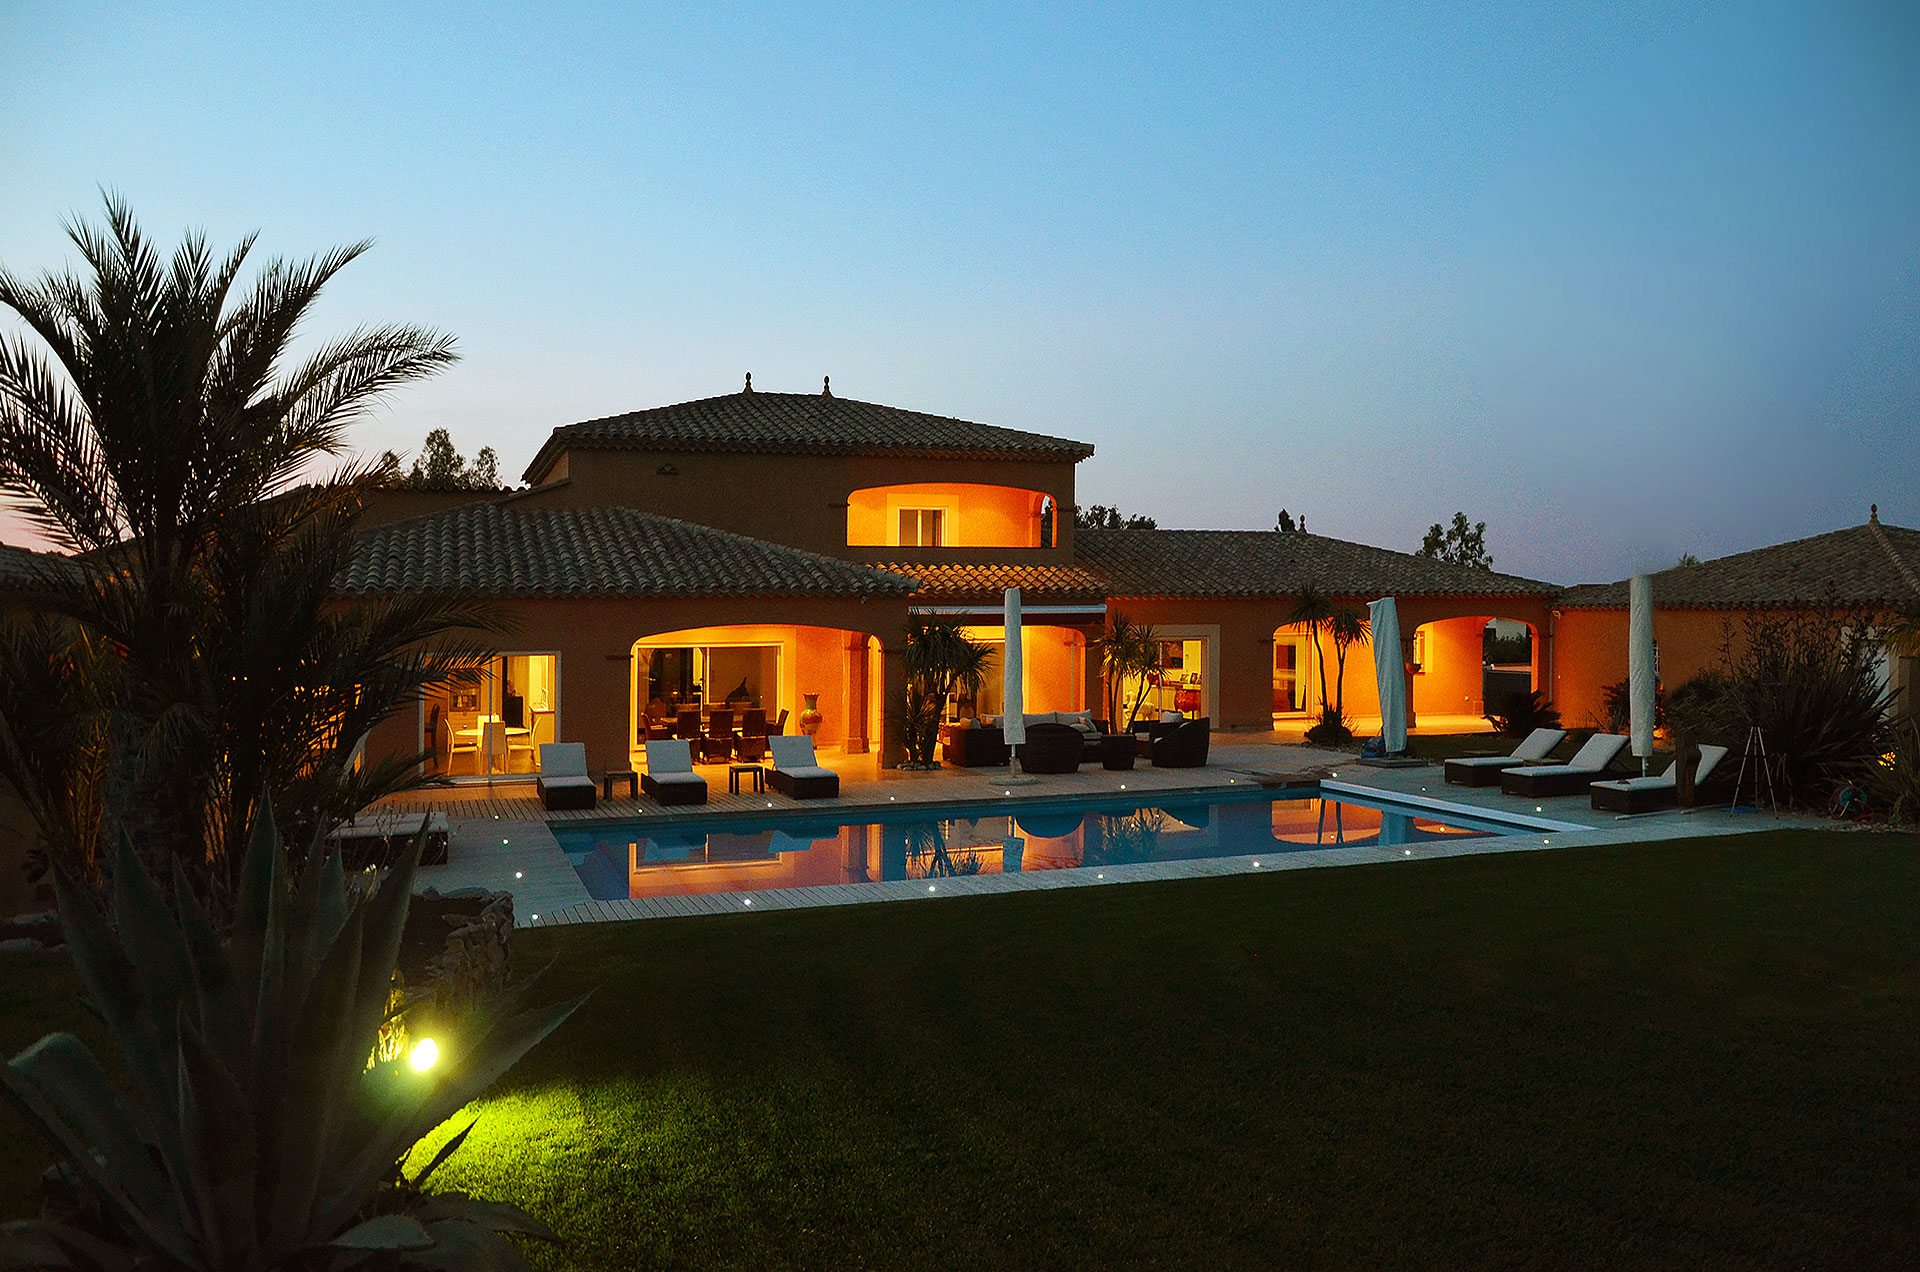 Luxury Neo-Provencal Villa For Sale In Perpignan, France | Exclusivity Finest International | FINEST RESIDENCES